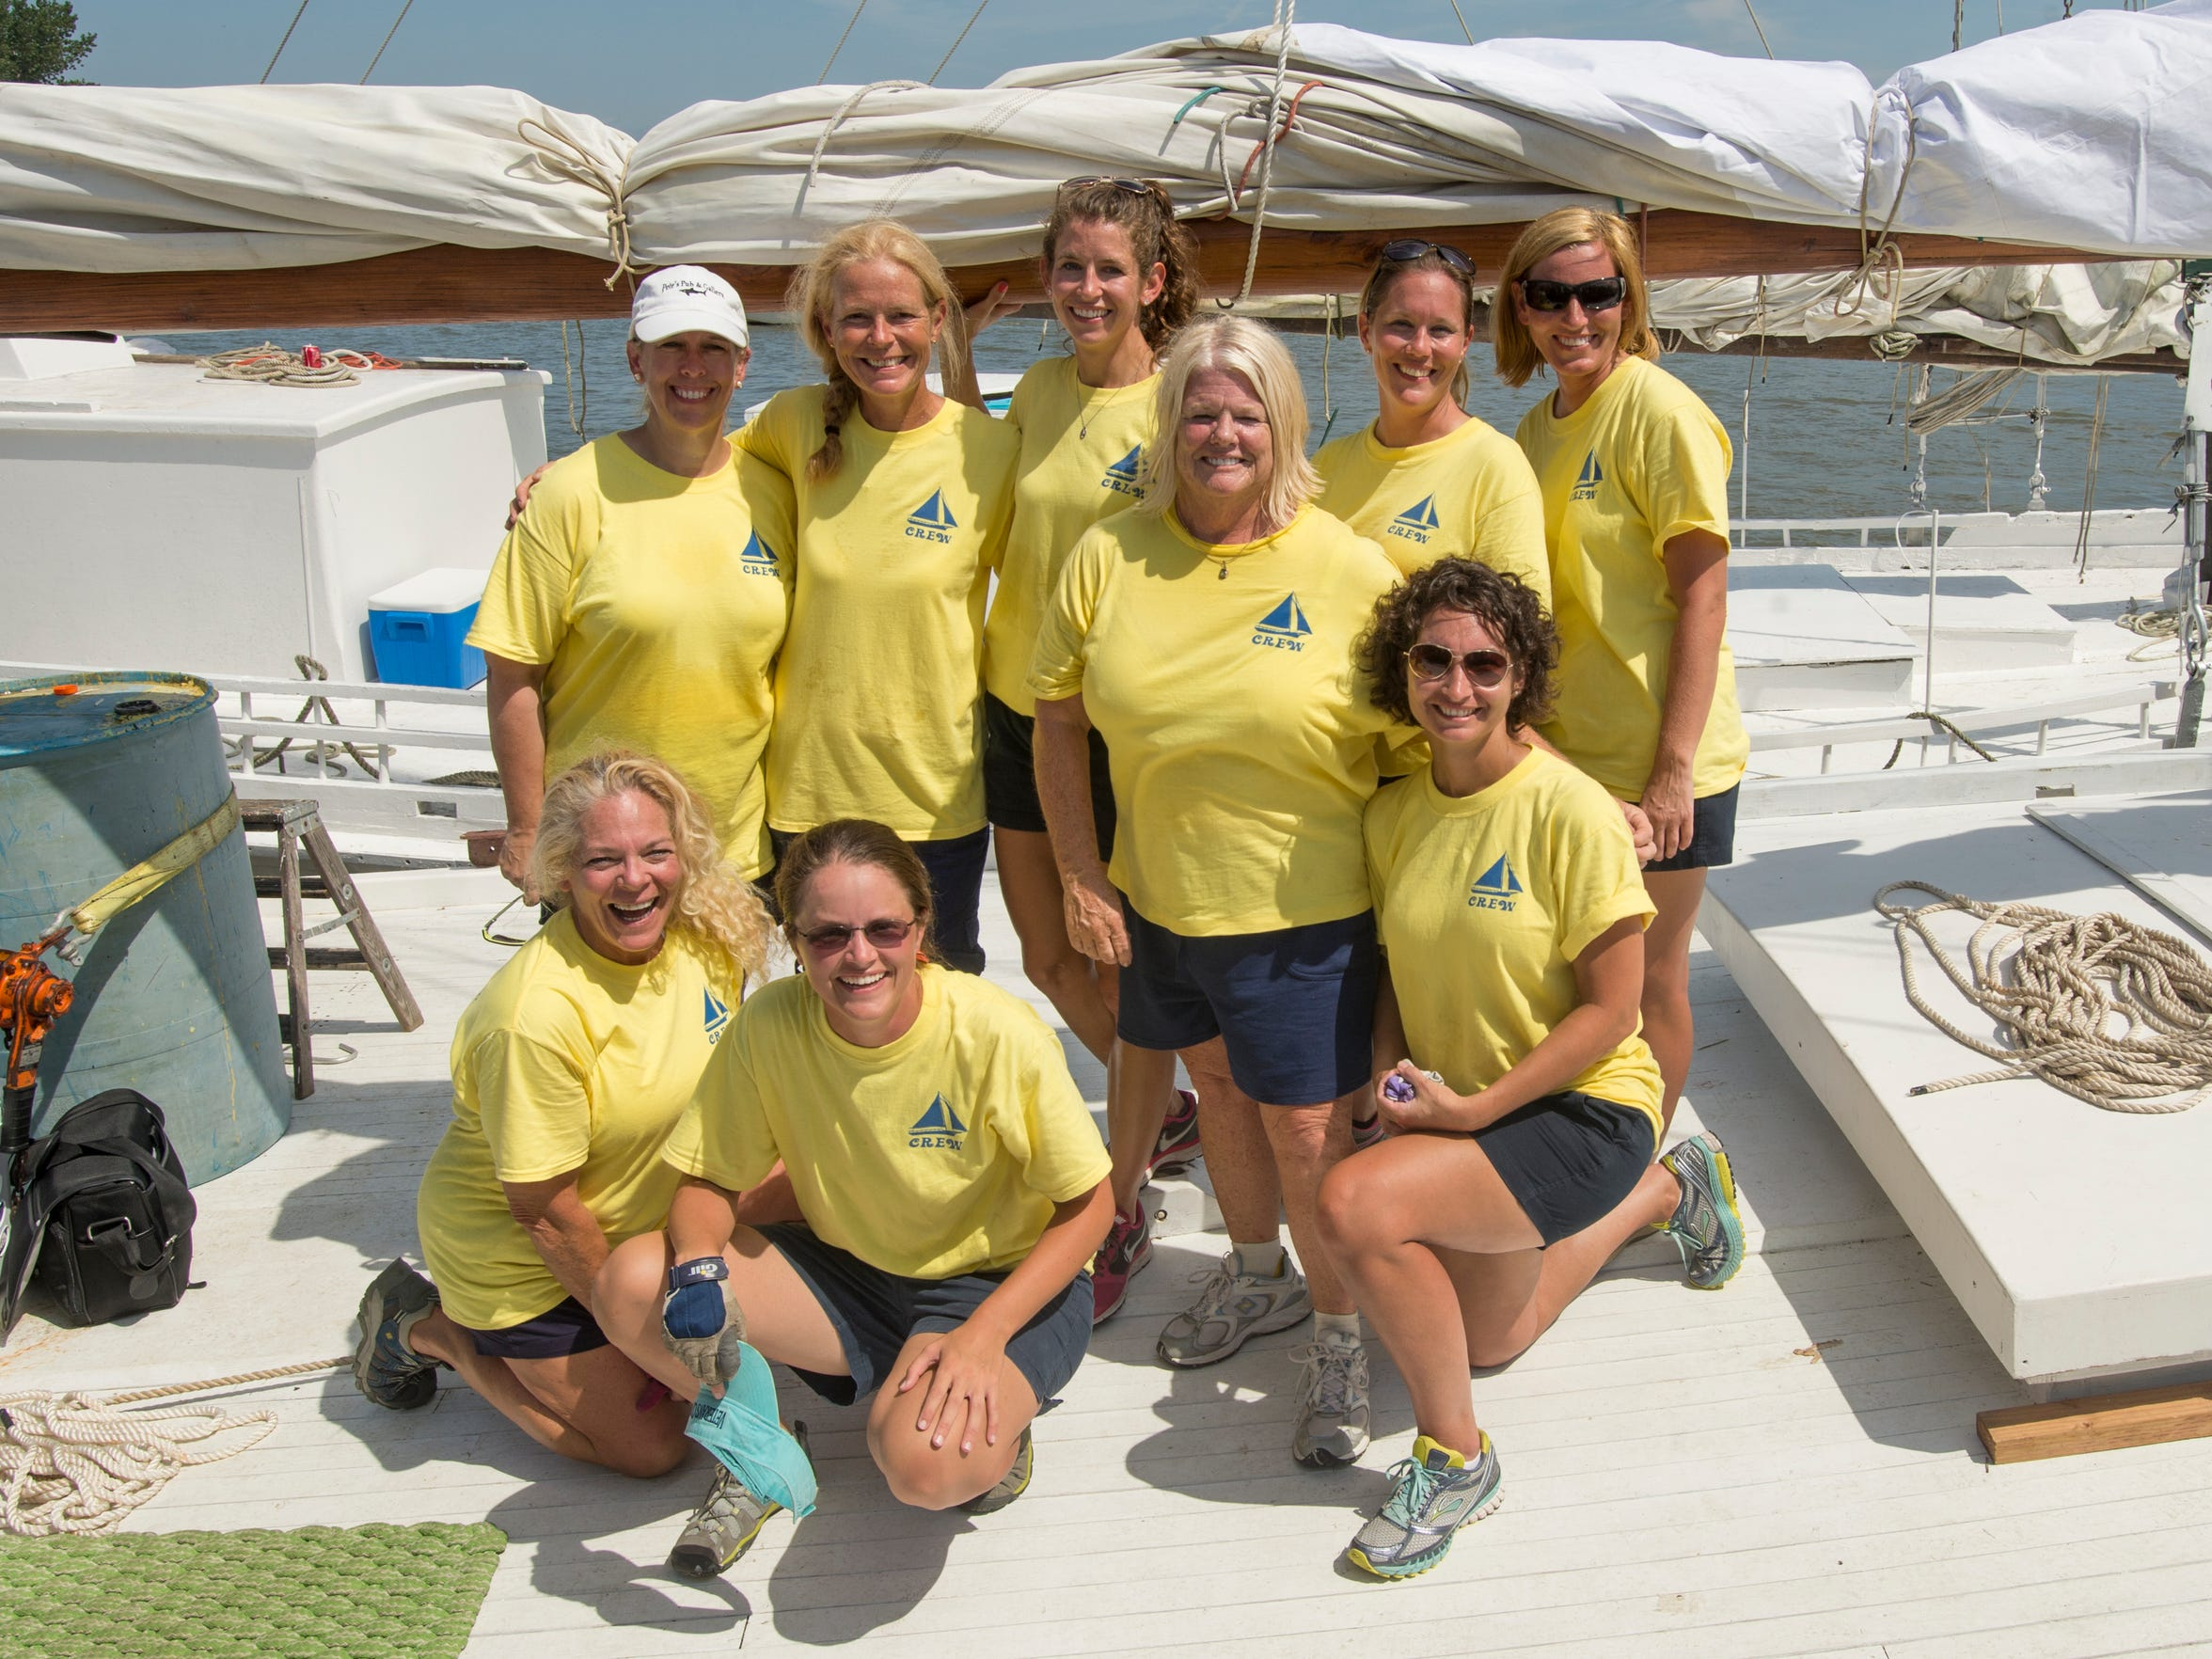 The crew of the skipjack Helen Virginia, owned by Harold